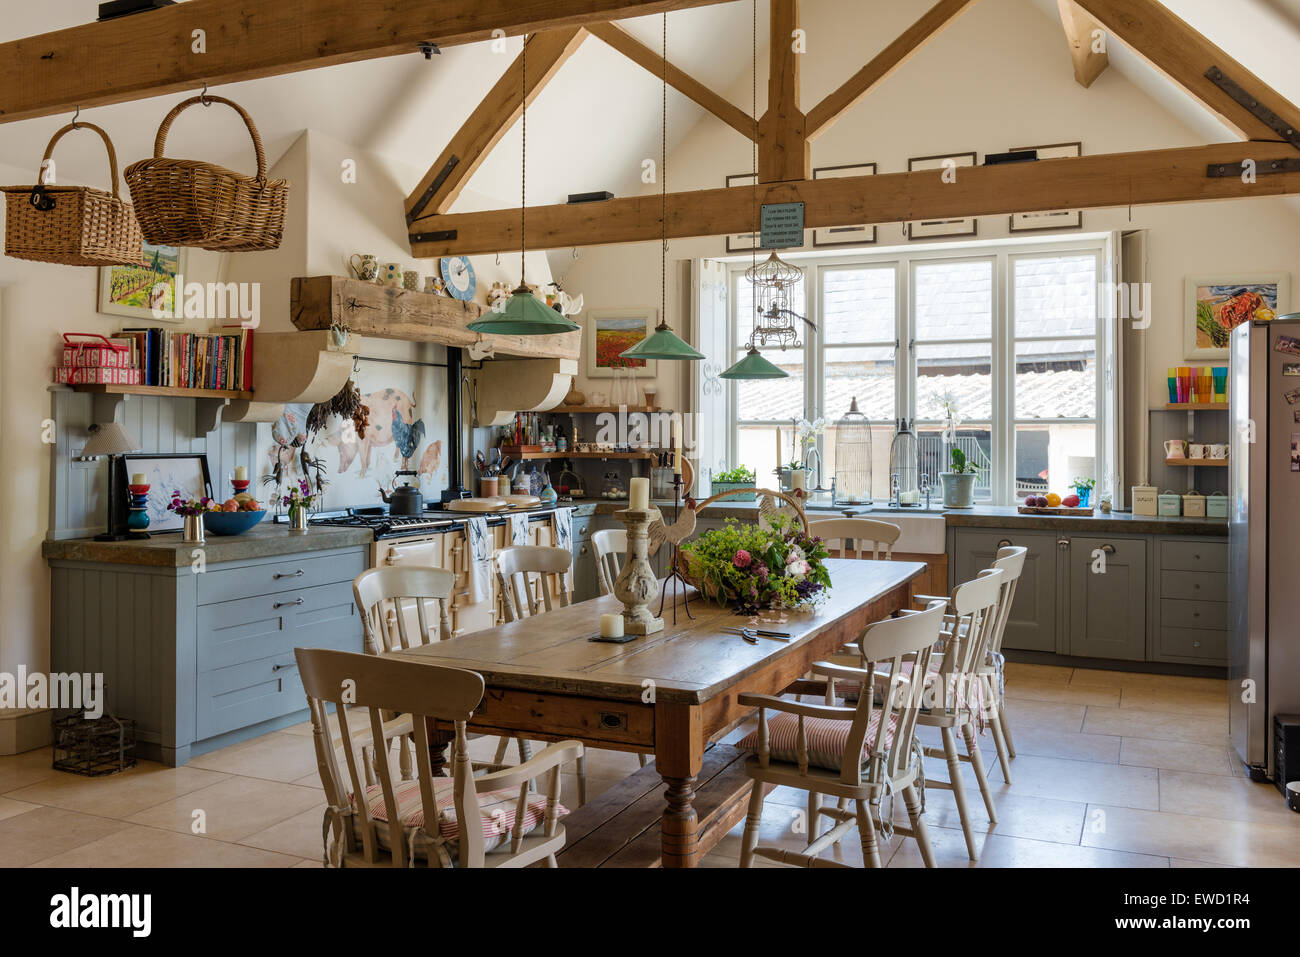 vintage farmhouse table in rustic kitchen with green pendant lights EWD1R4